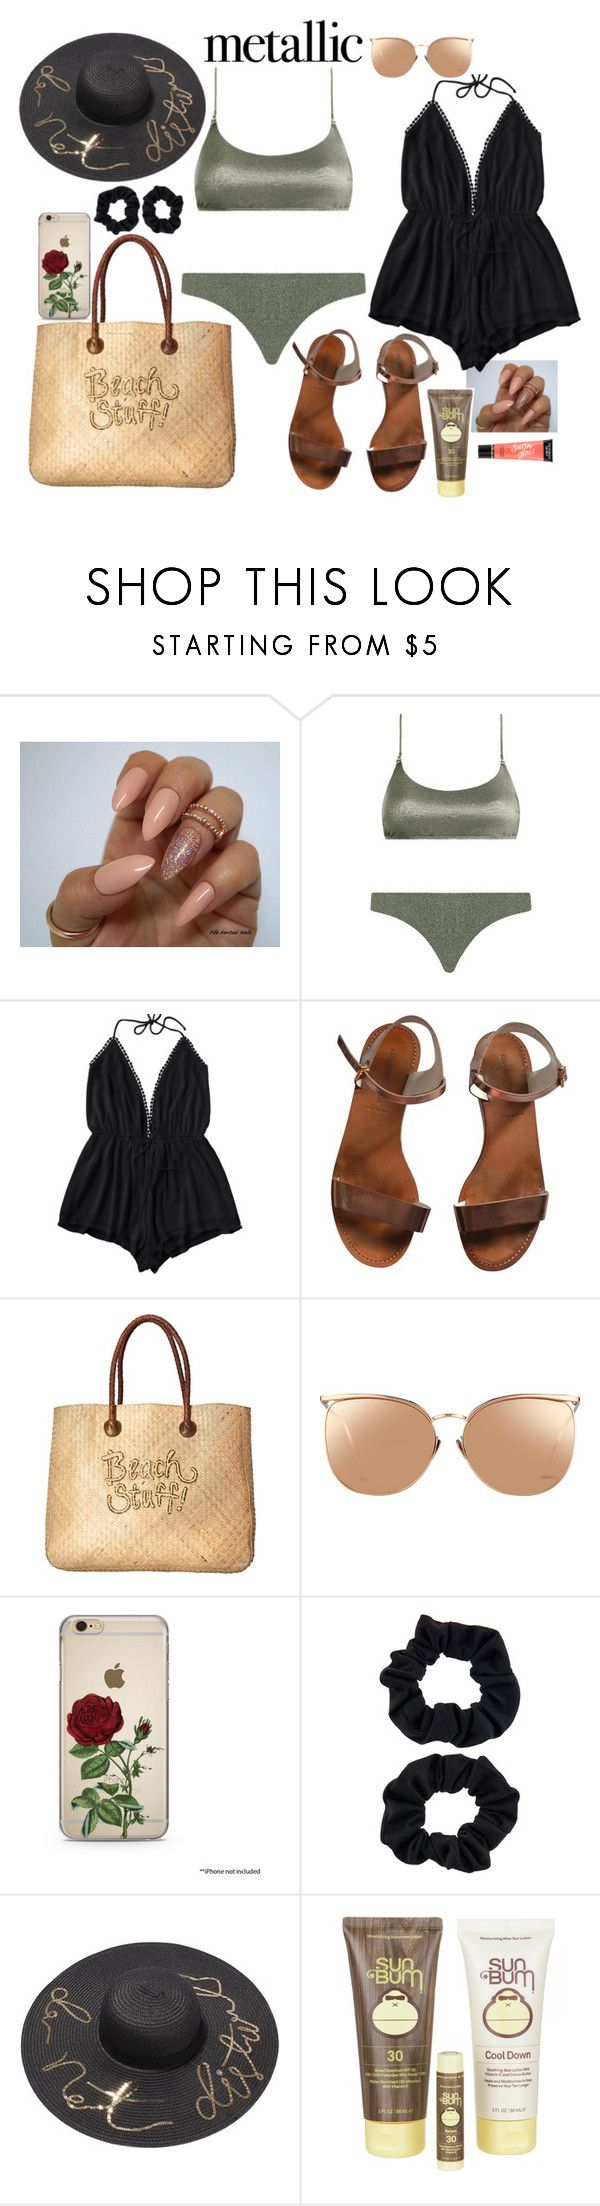 """metallic swimwear"" by giulivittori ❤ liked on Polyvore featuring Zimmermann, Emporio Armani, White Stuff, Linda Farrow, Accessorize, Sun Bum and Victoria's Secret"